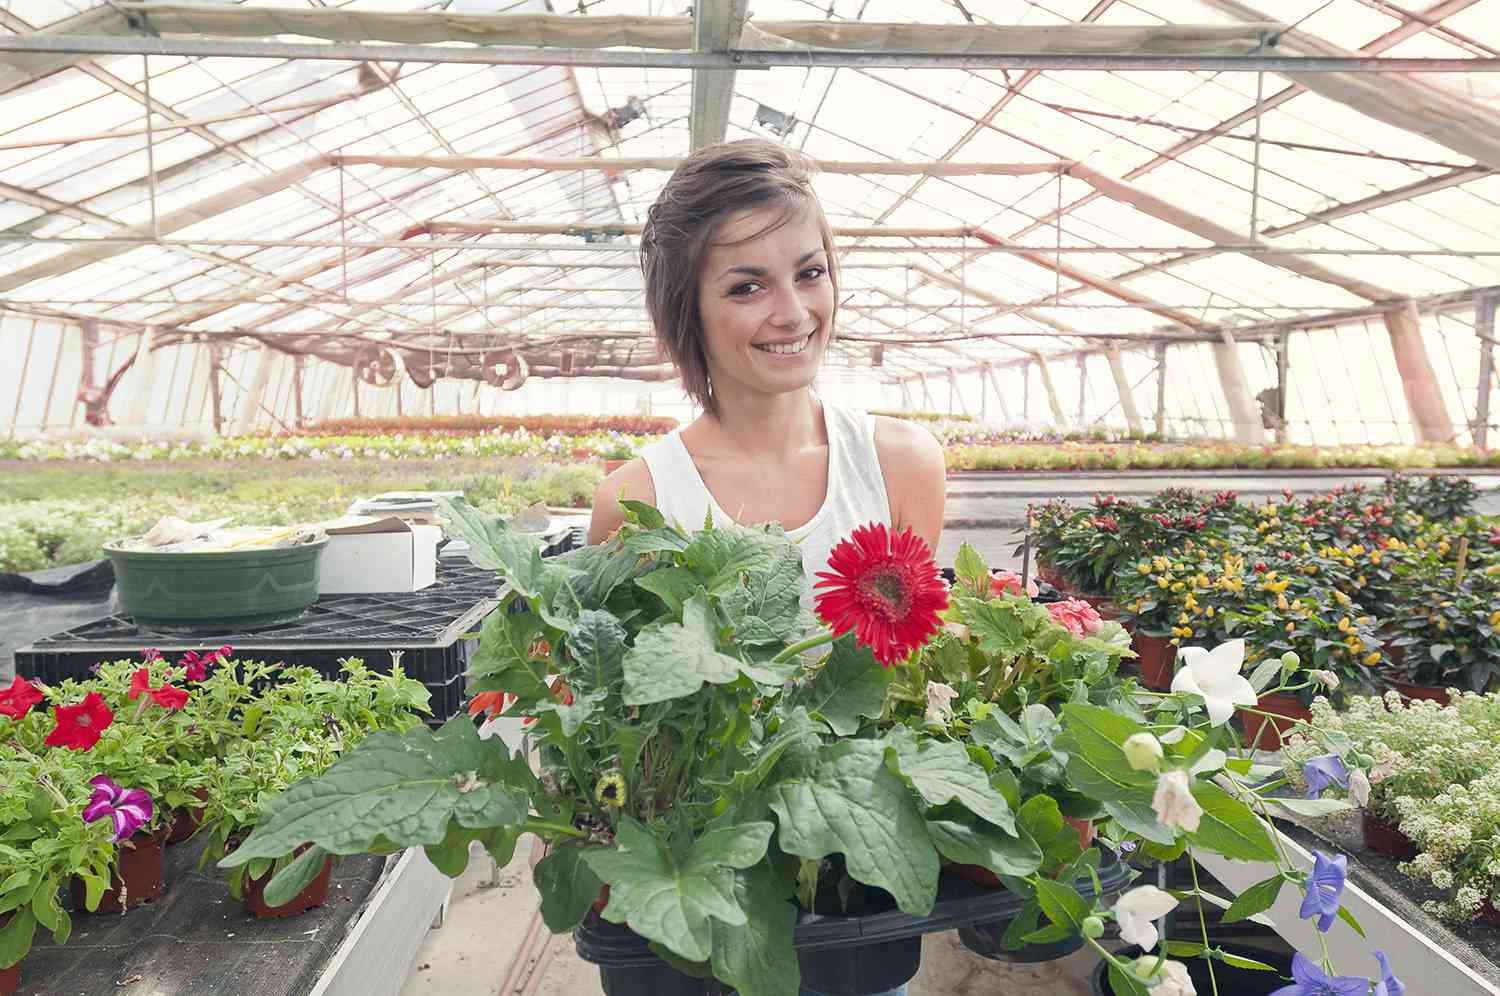 Young woman working part time in a greenhouse.